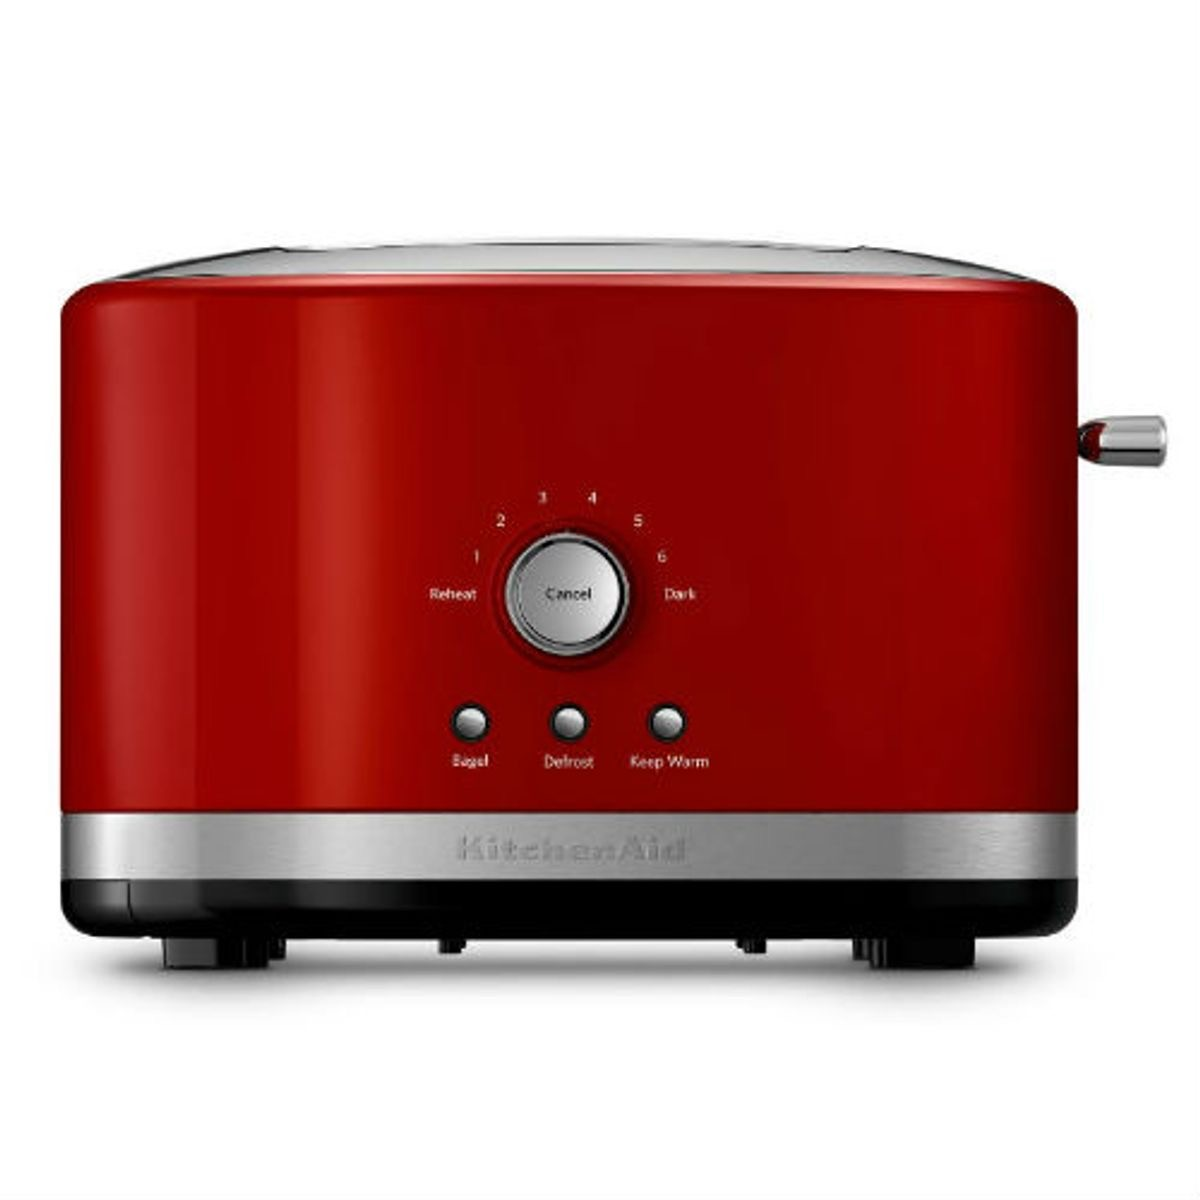 Torradeira Manual KitchenAid Artisan 2 Fatias Empire Red 127V - KJC42AV